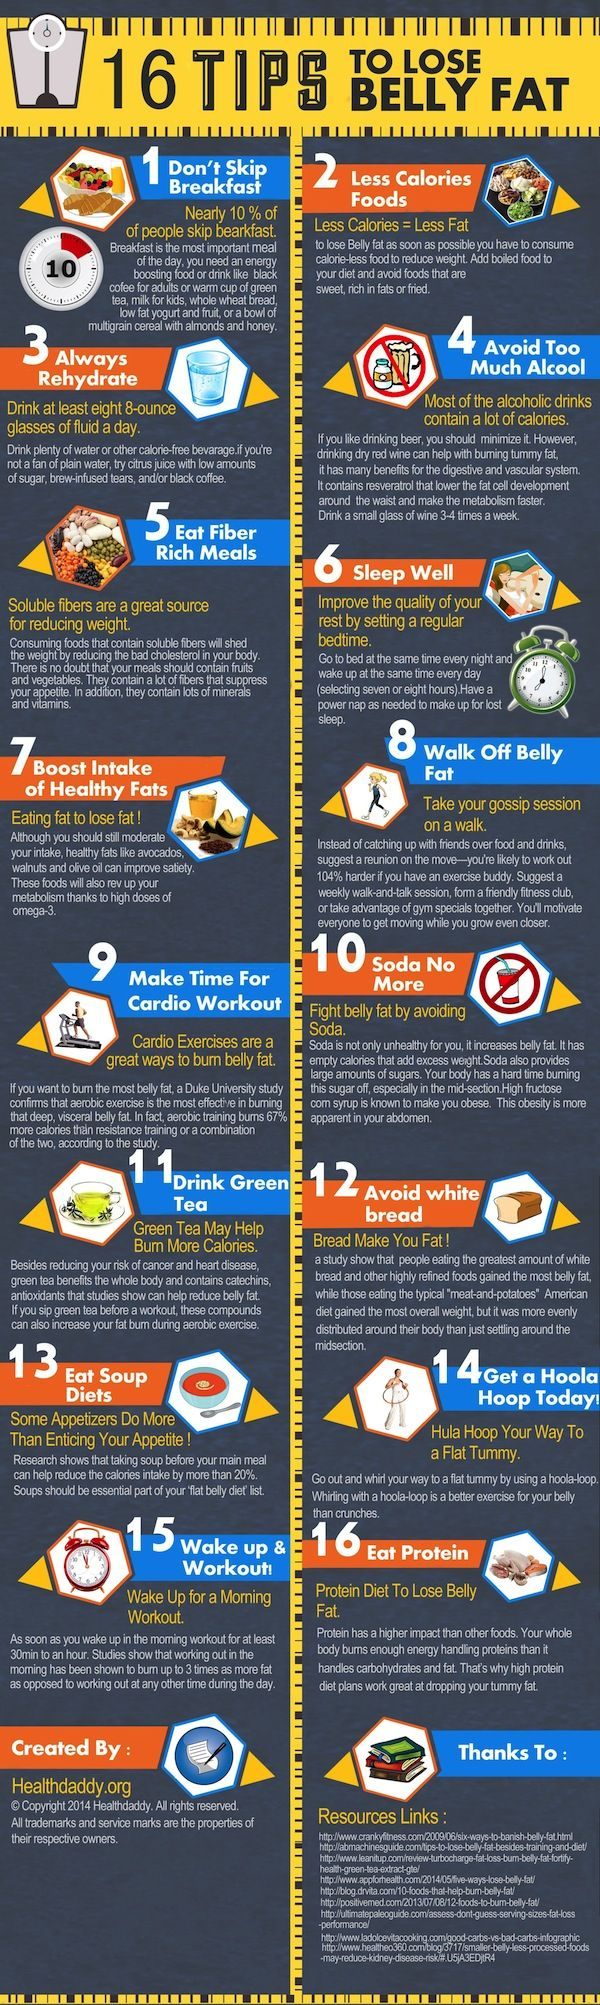 16 Tips to Lose Belly Fat -PositiveMed | Positive Vibrations in Health